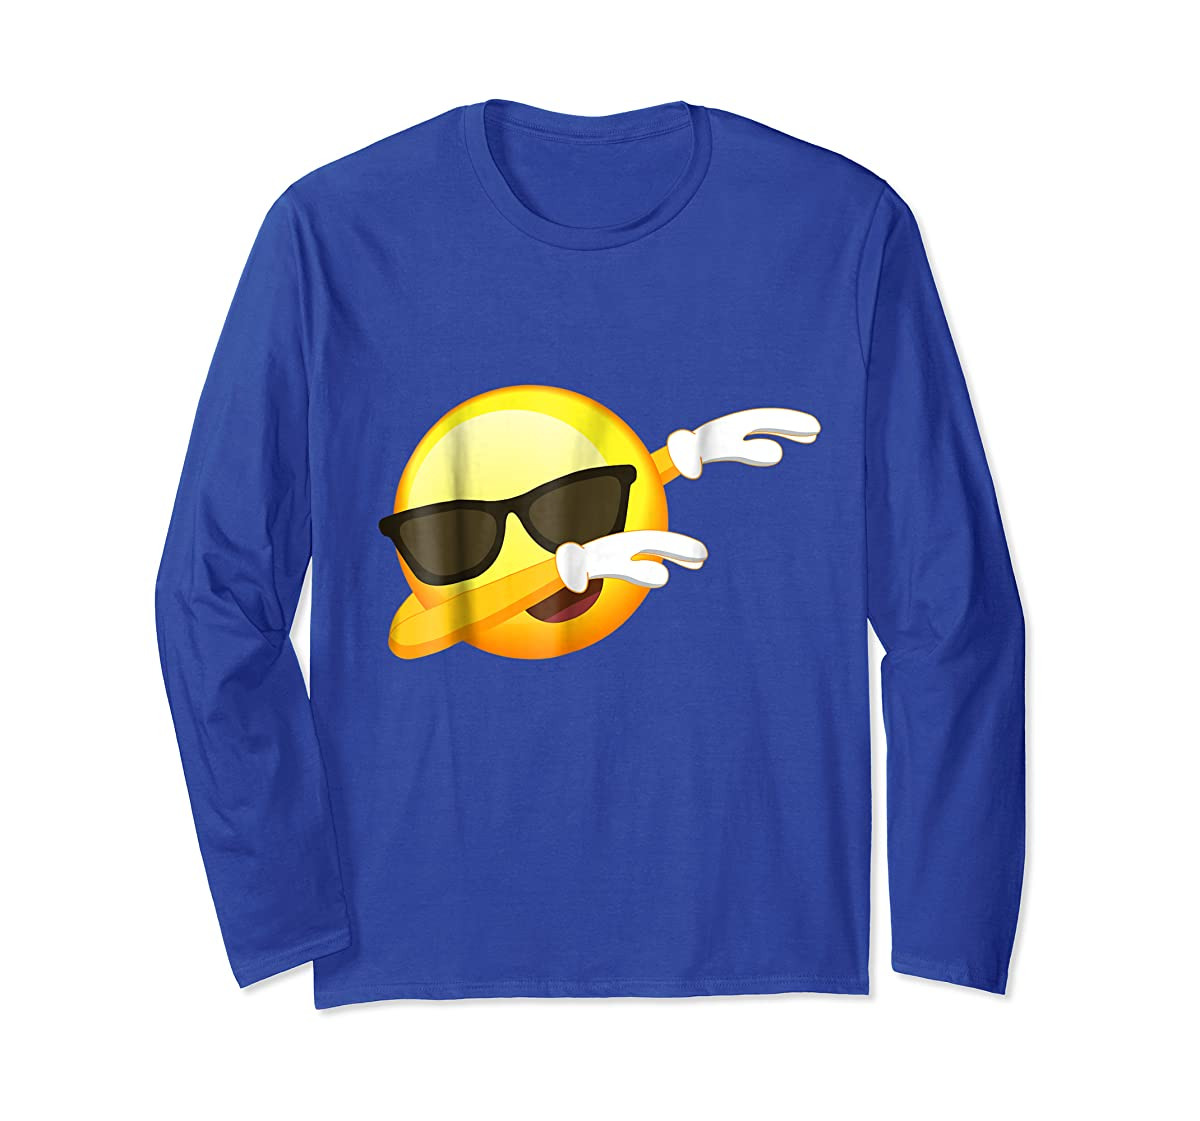 Funny Dabbing Emoji Shirt - Cool Emoji Dab T-Shirt-Long Sleeve-Royal